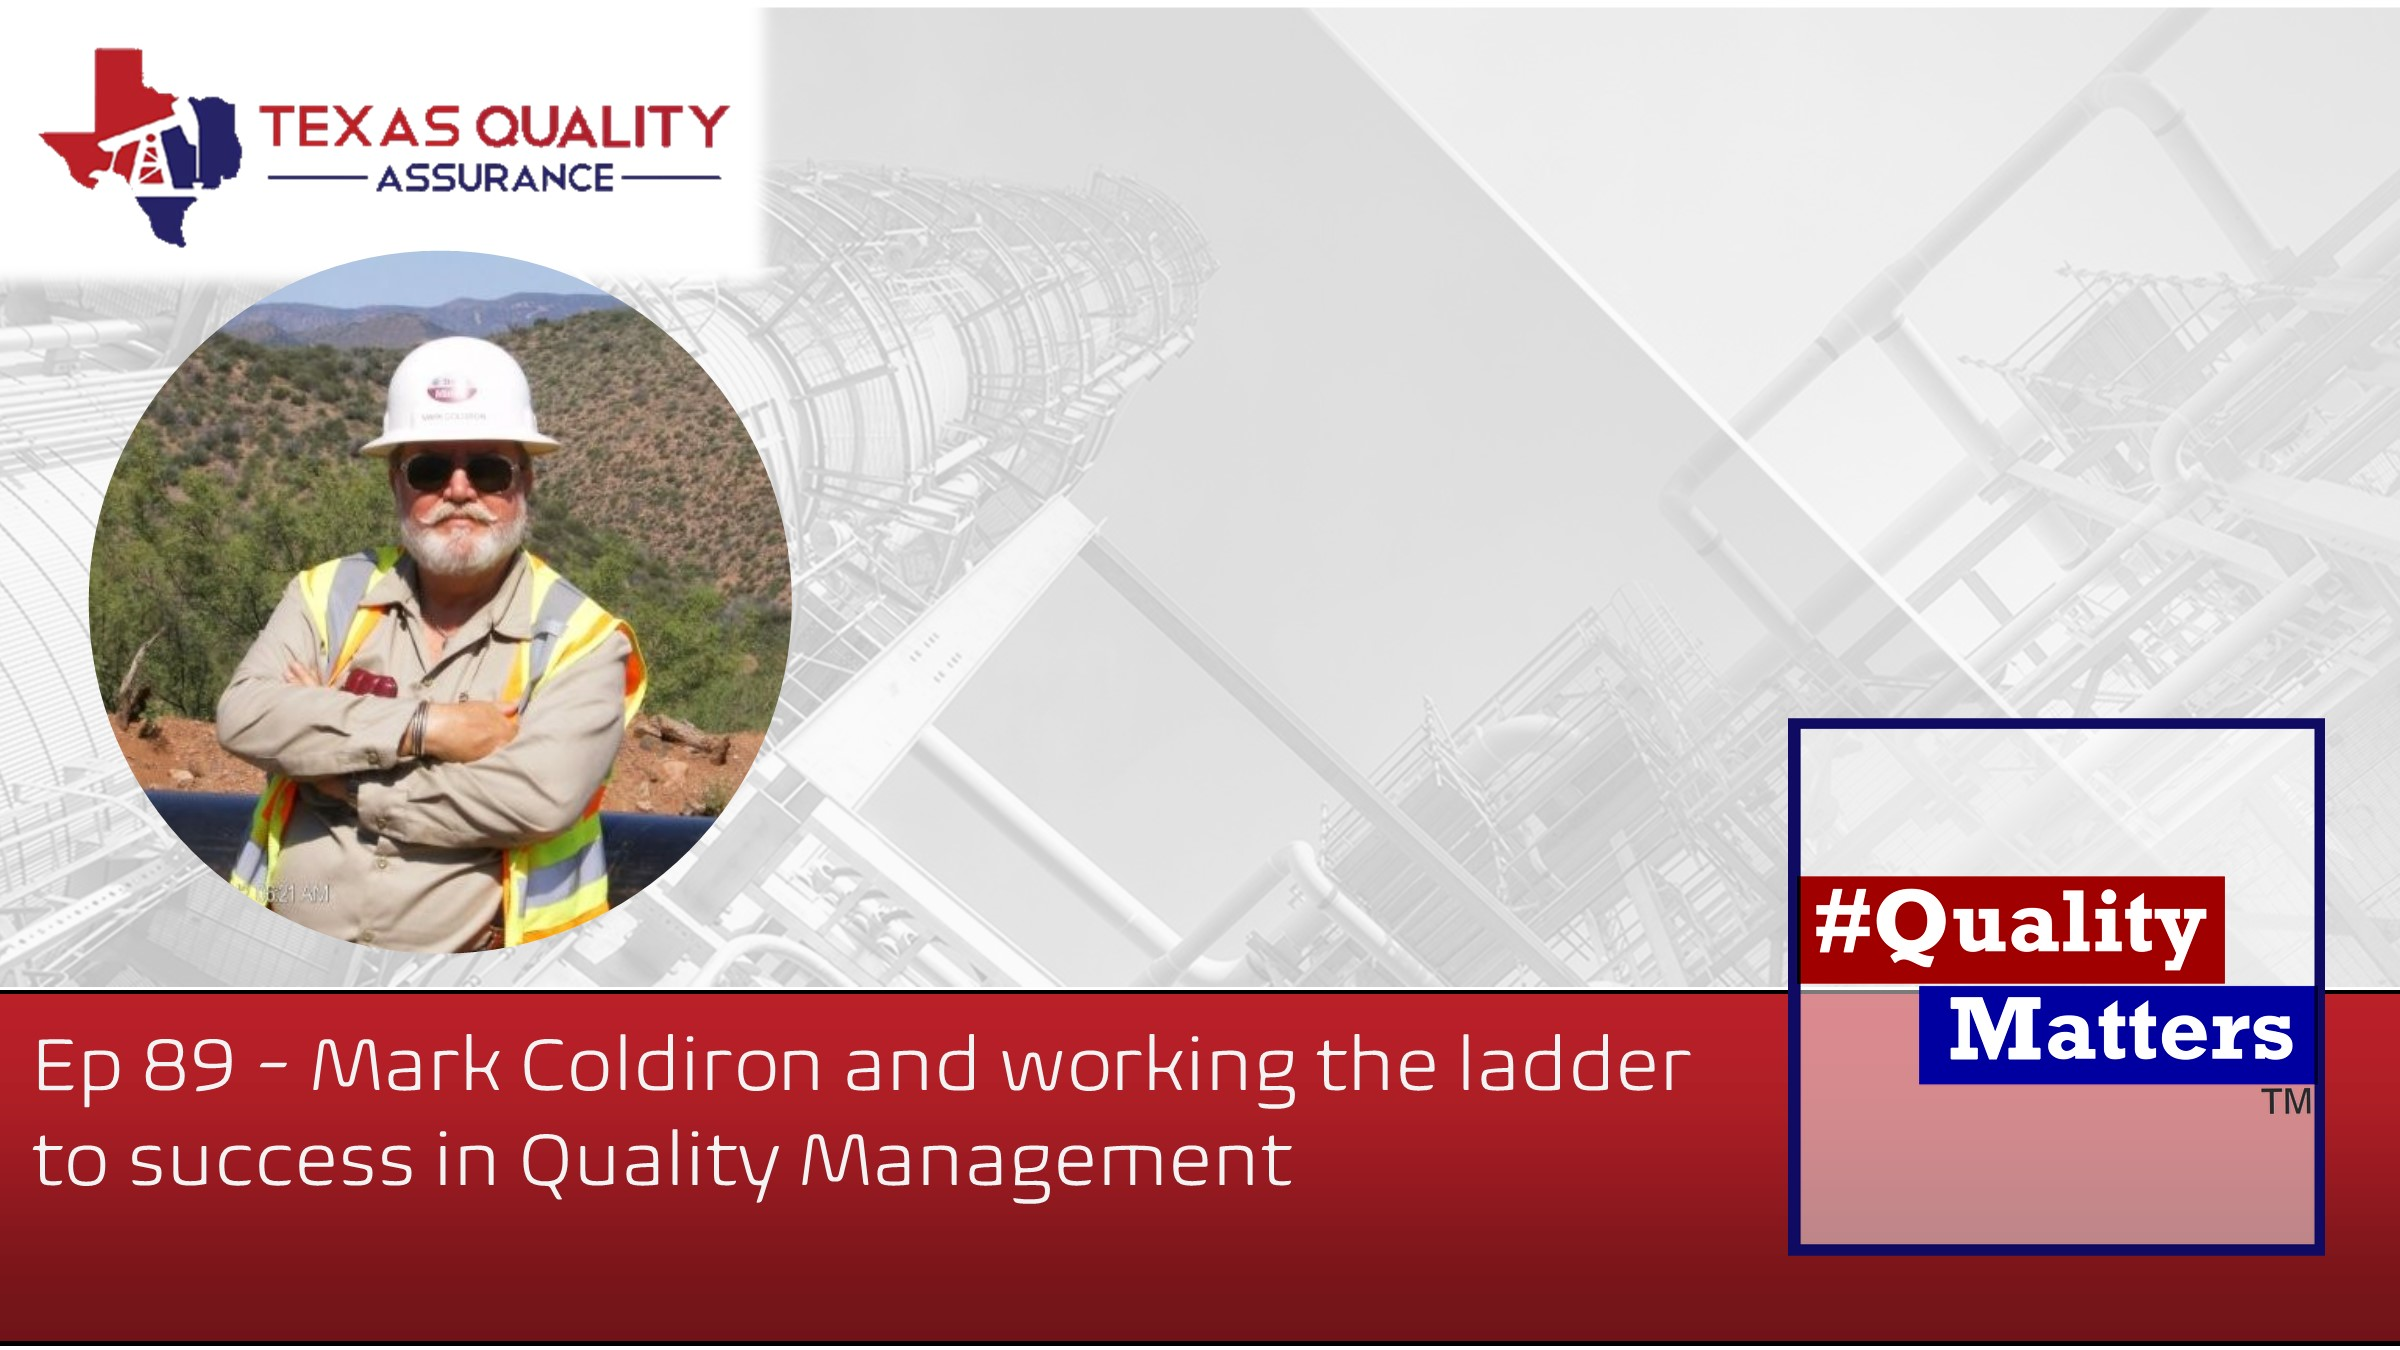 Ep 89 – Mark Coldiron and working the ladder to success in Quality